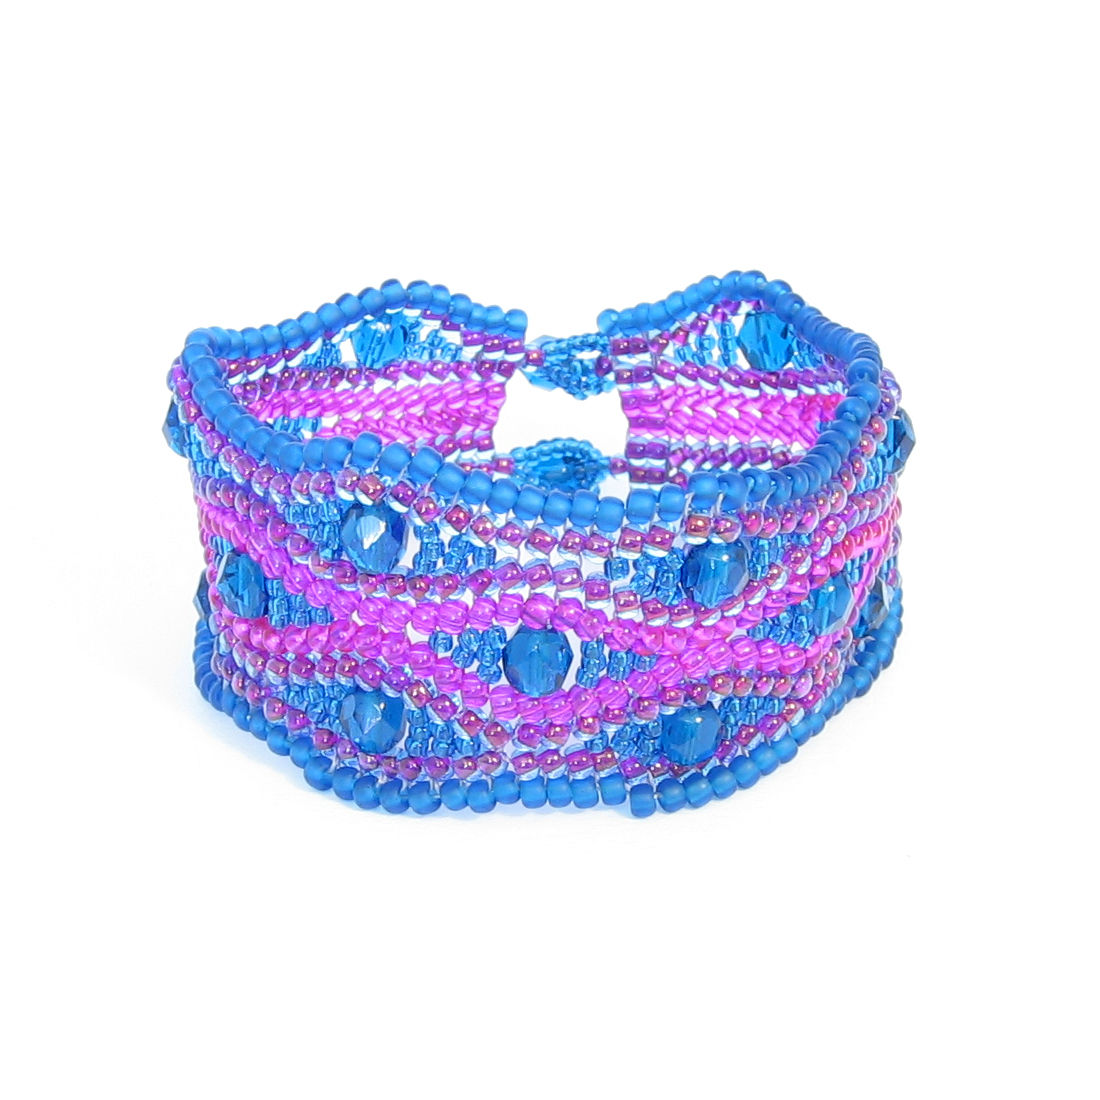 Hot Pink & Teal Blue Crystal Cuff Bracelet - product images  of